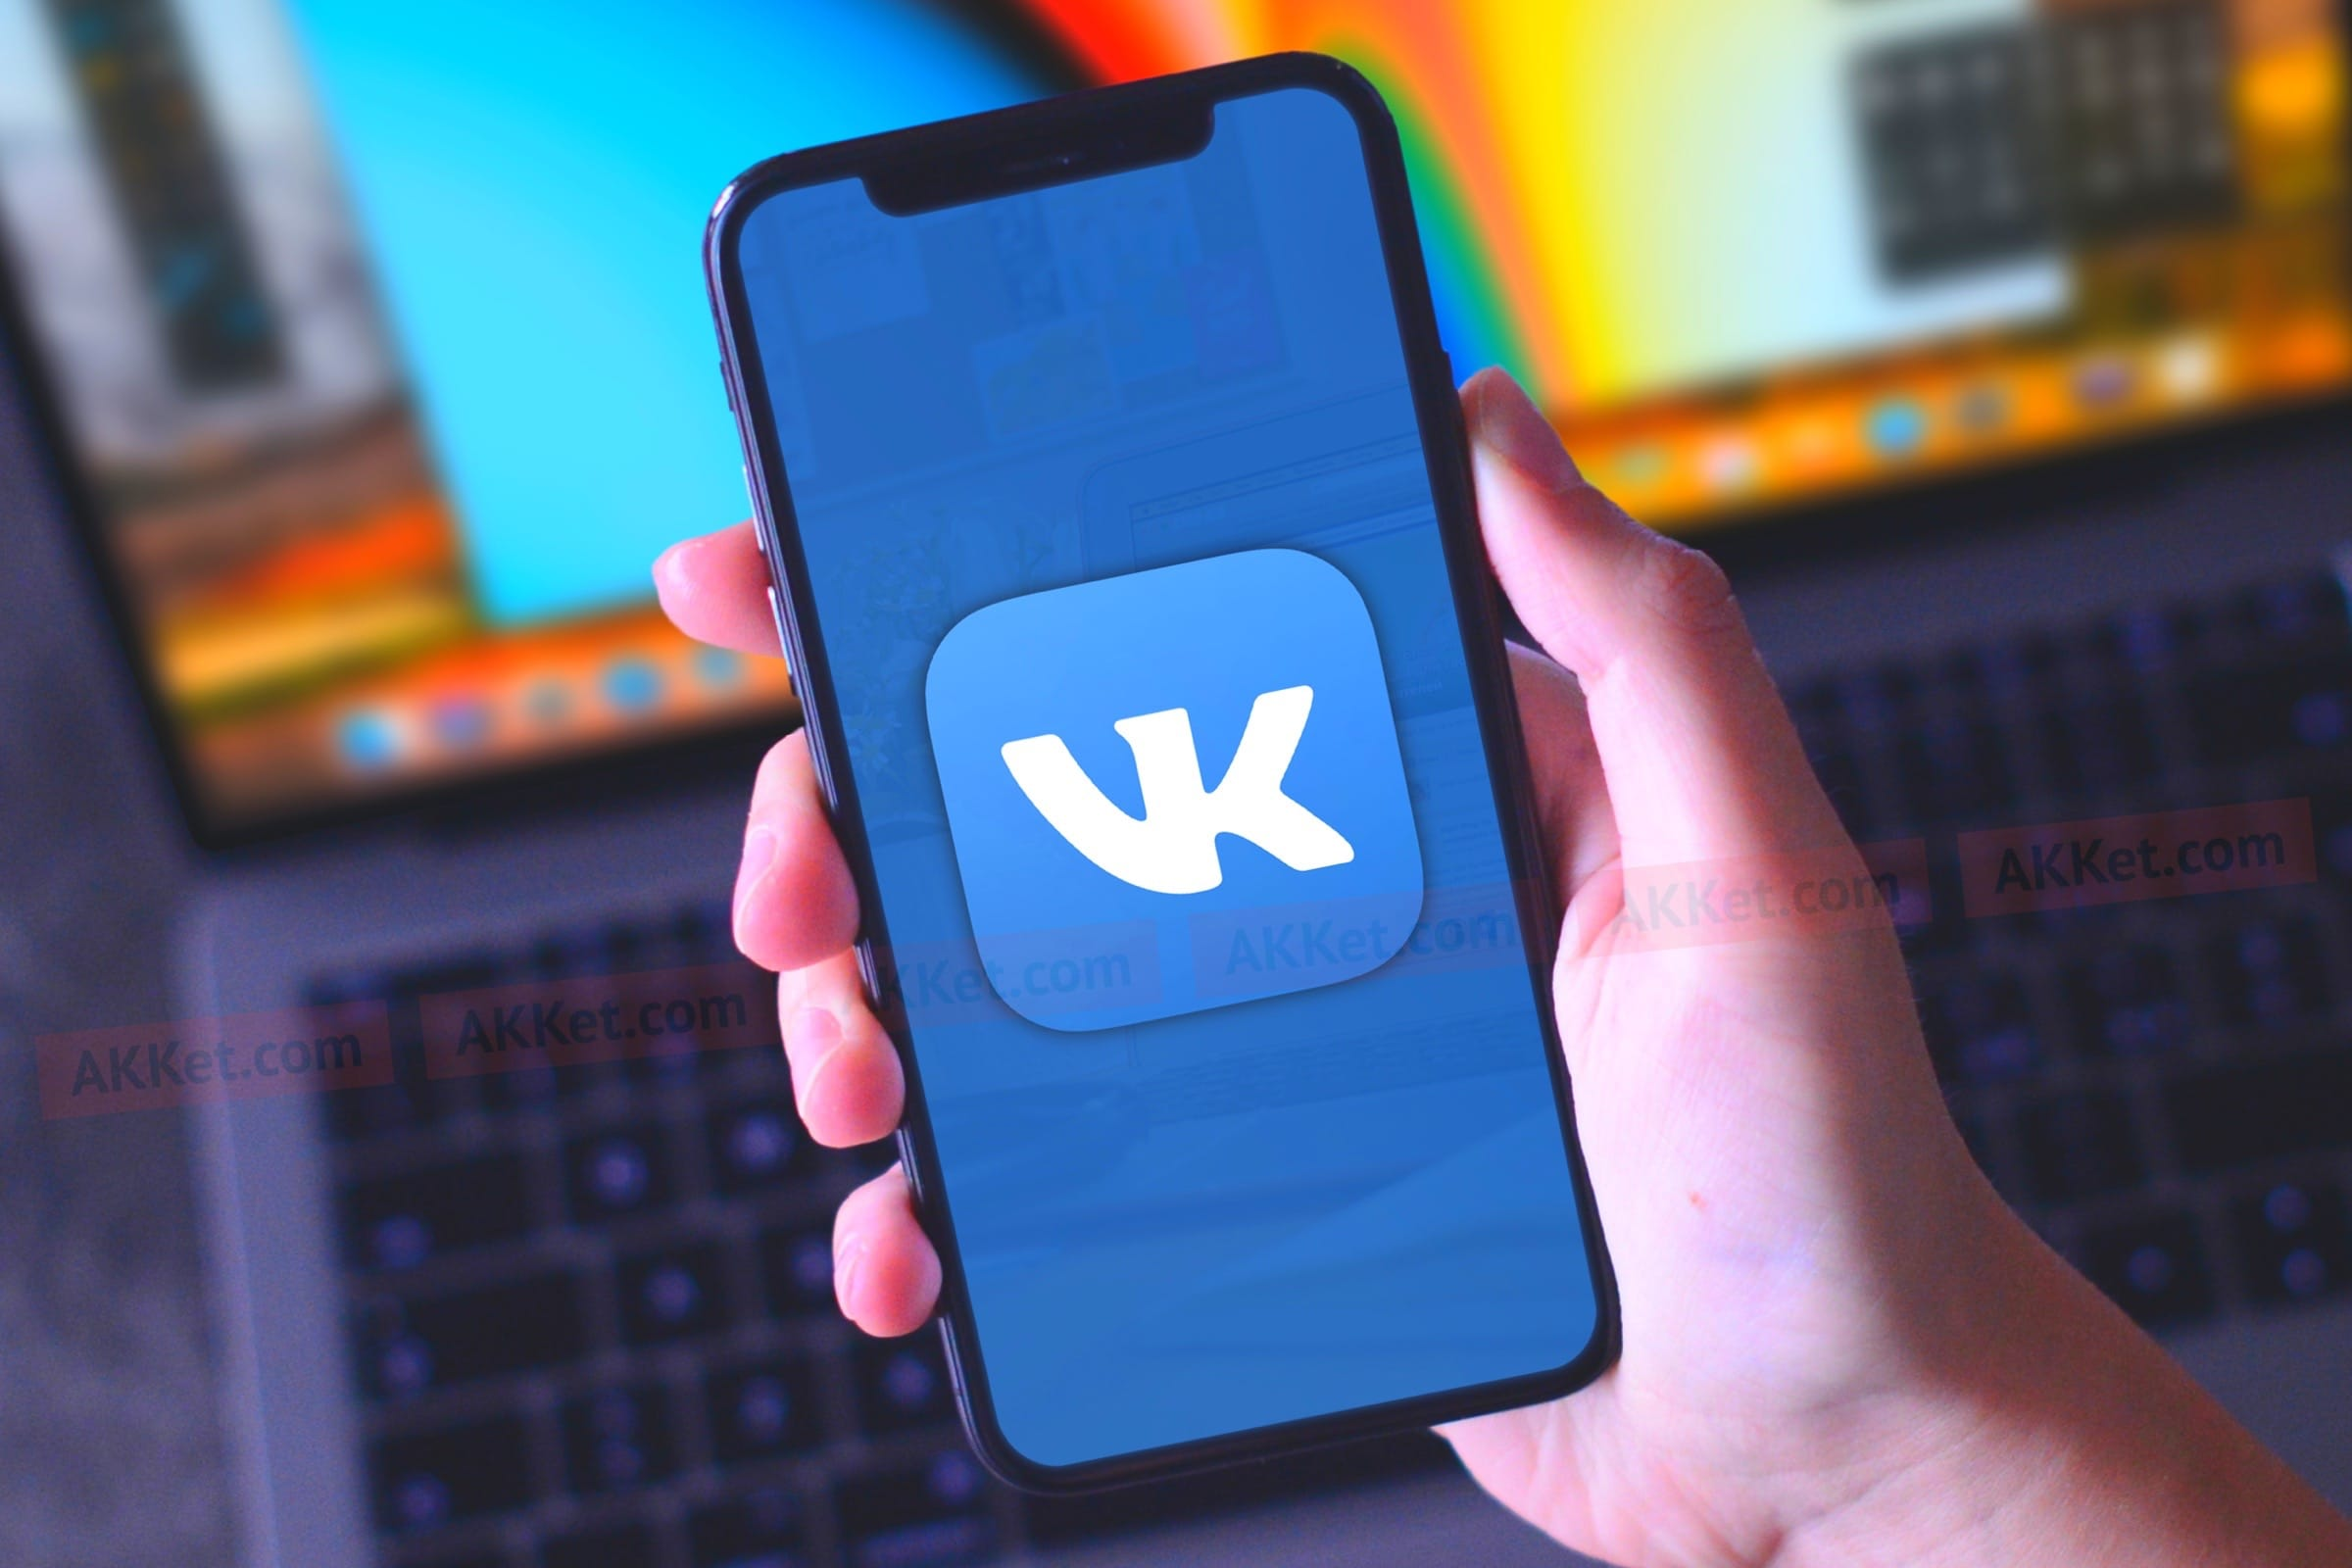 """Users """"Vkontakte"""" will be able to get cashback about purchases offline"""